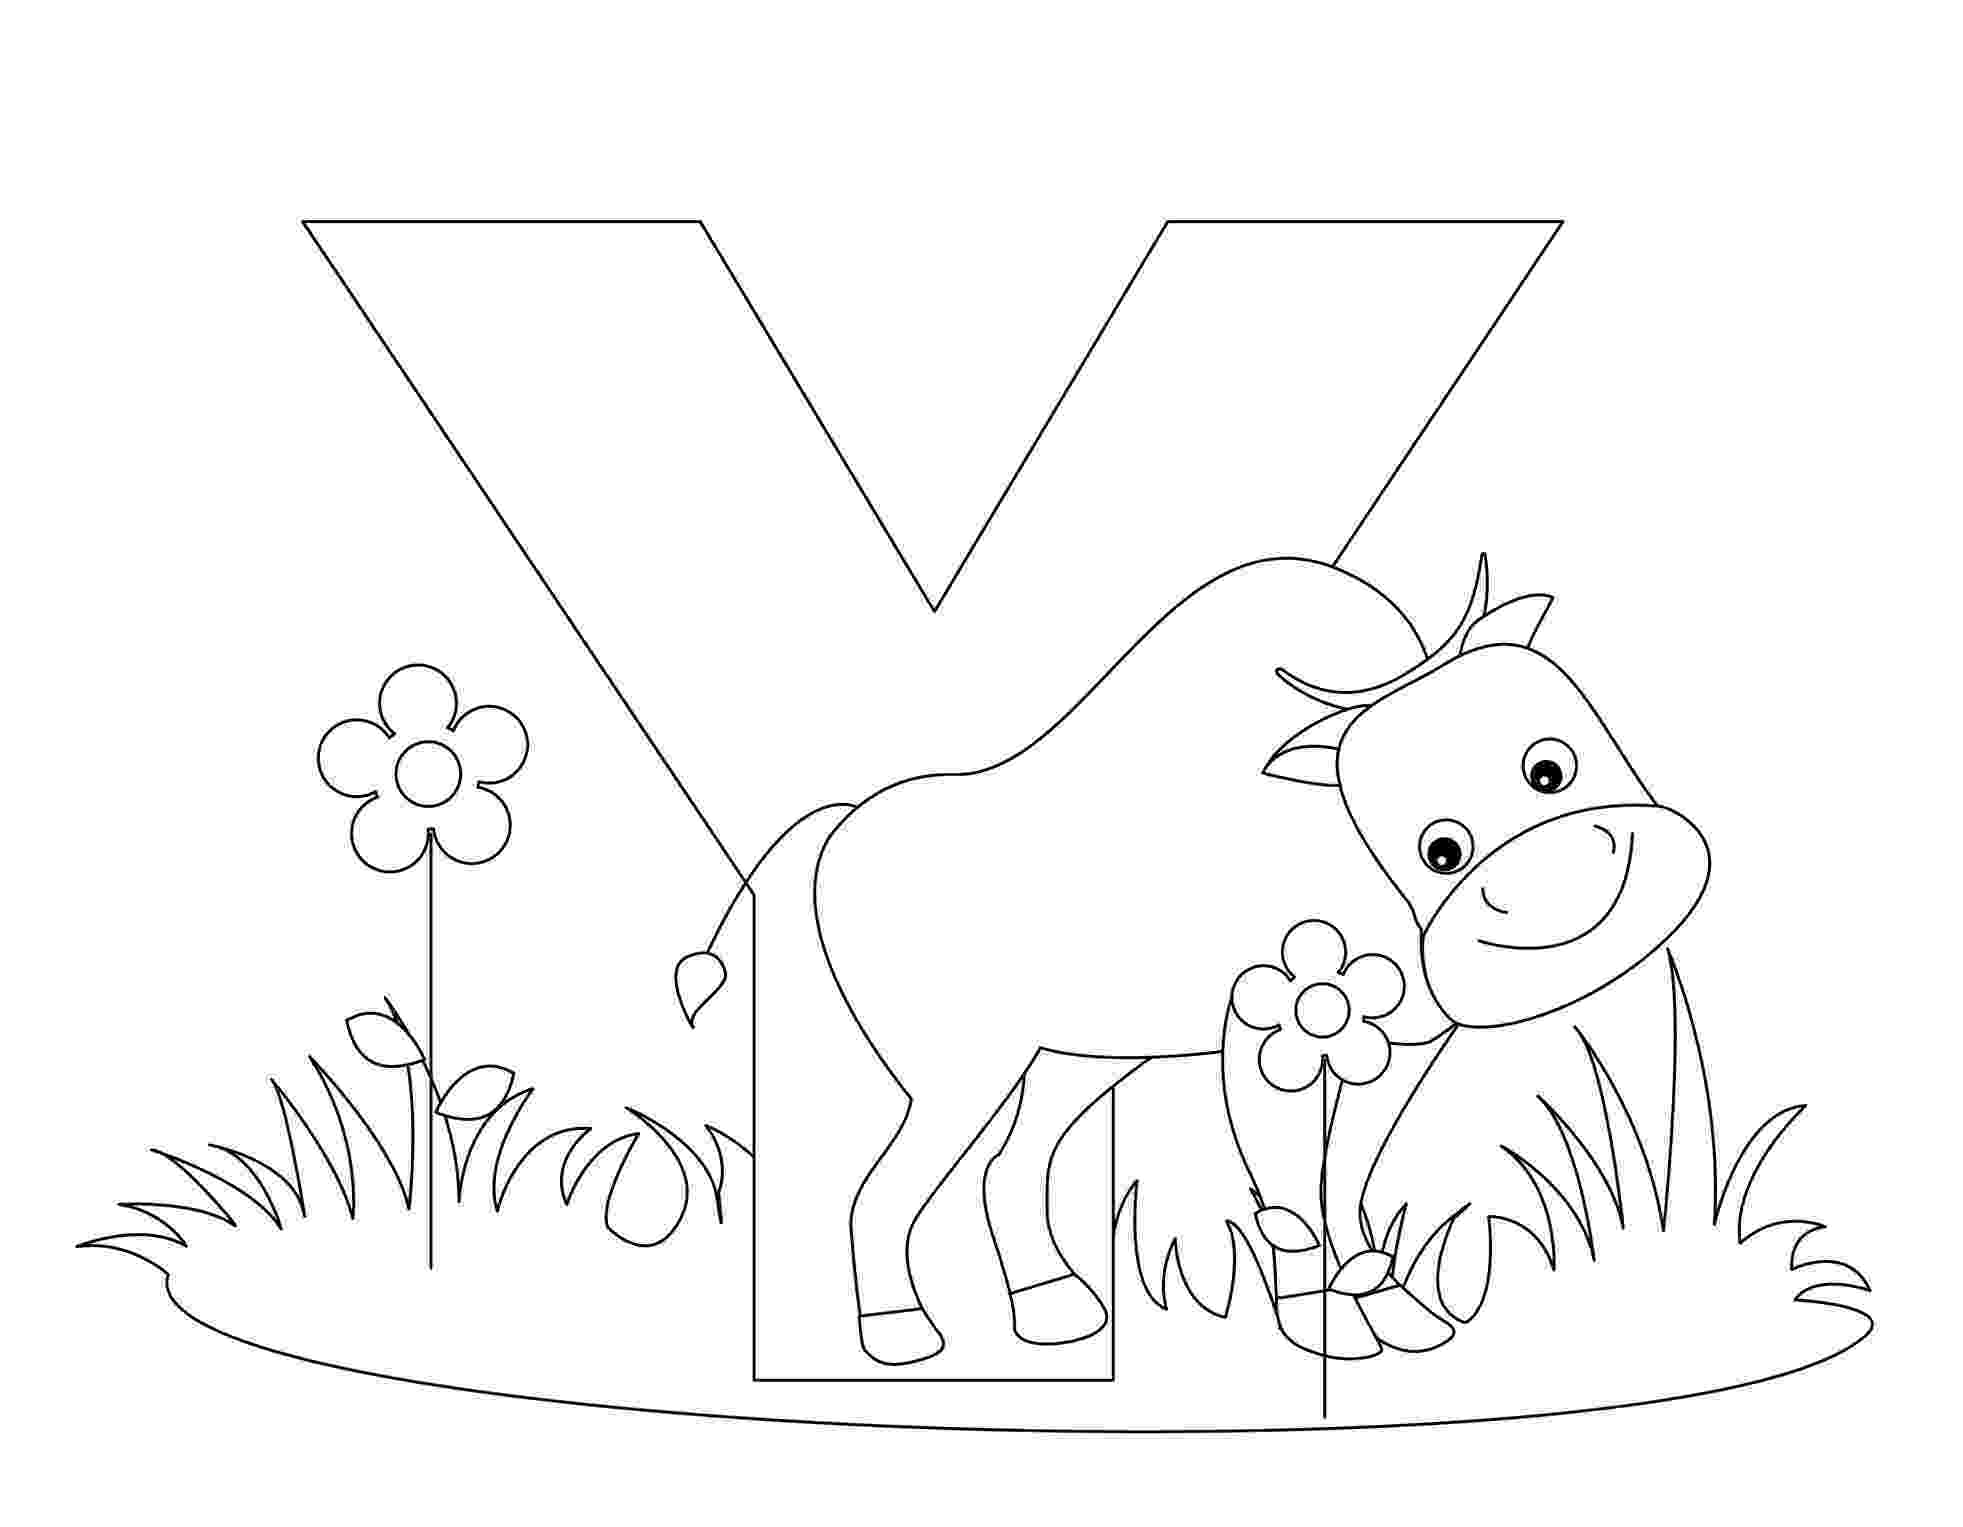 coloring pages of letters free printable alphabet coloring pages for kids best coloring pages of letters 1 1